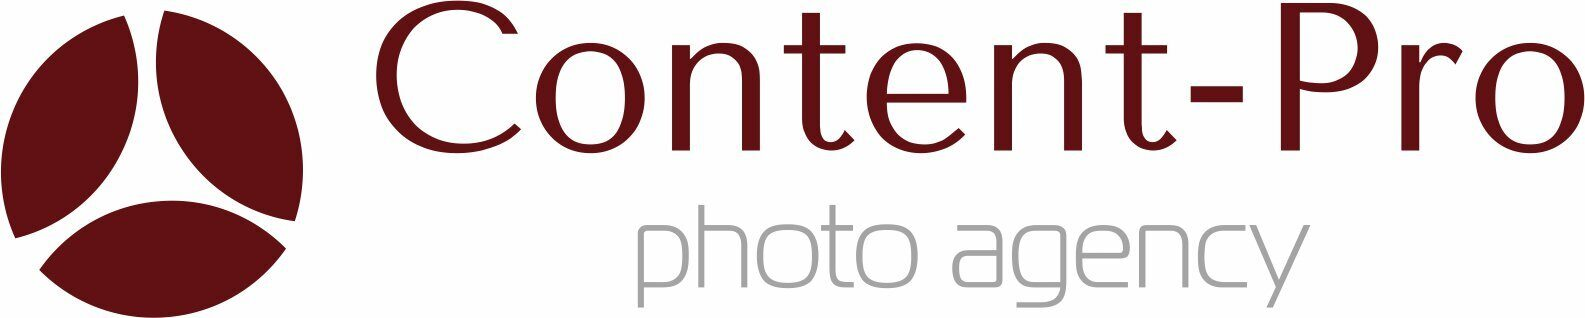 Content-pro photo agency